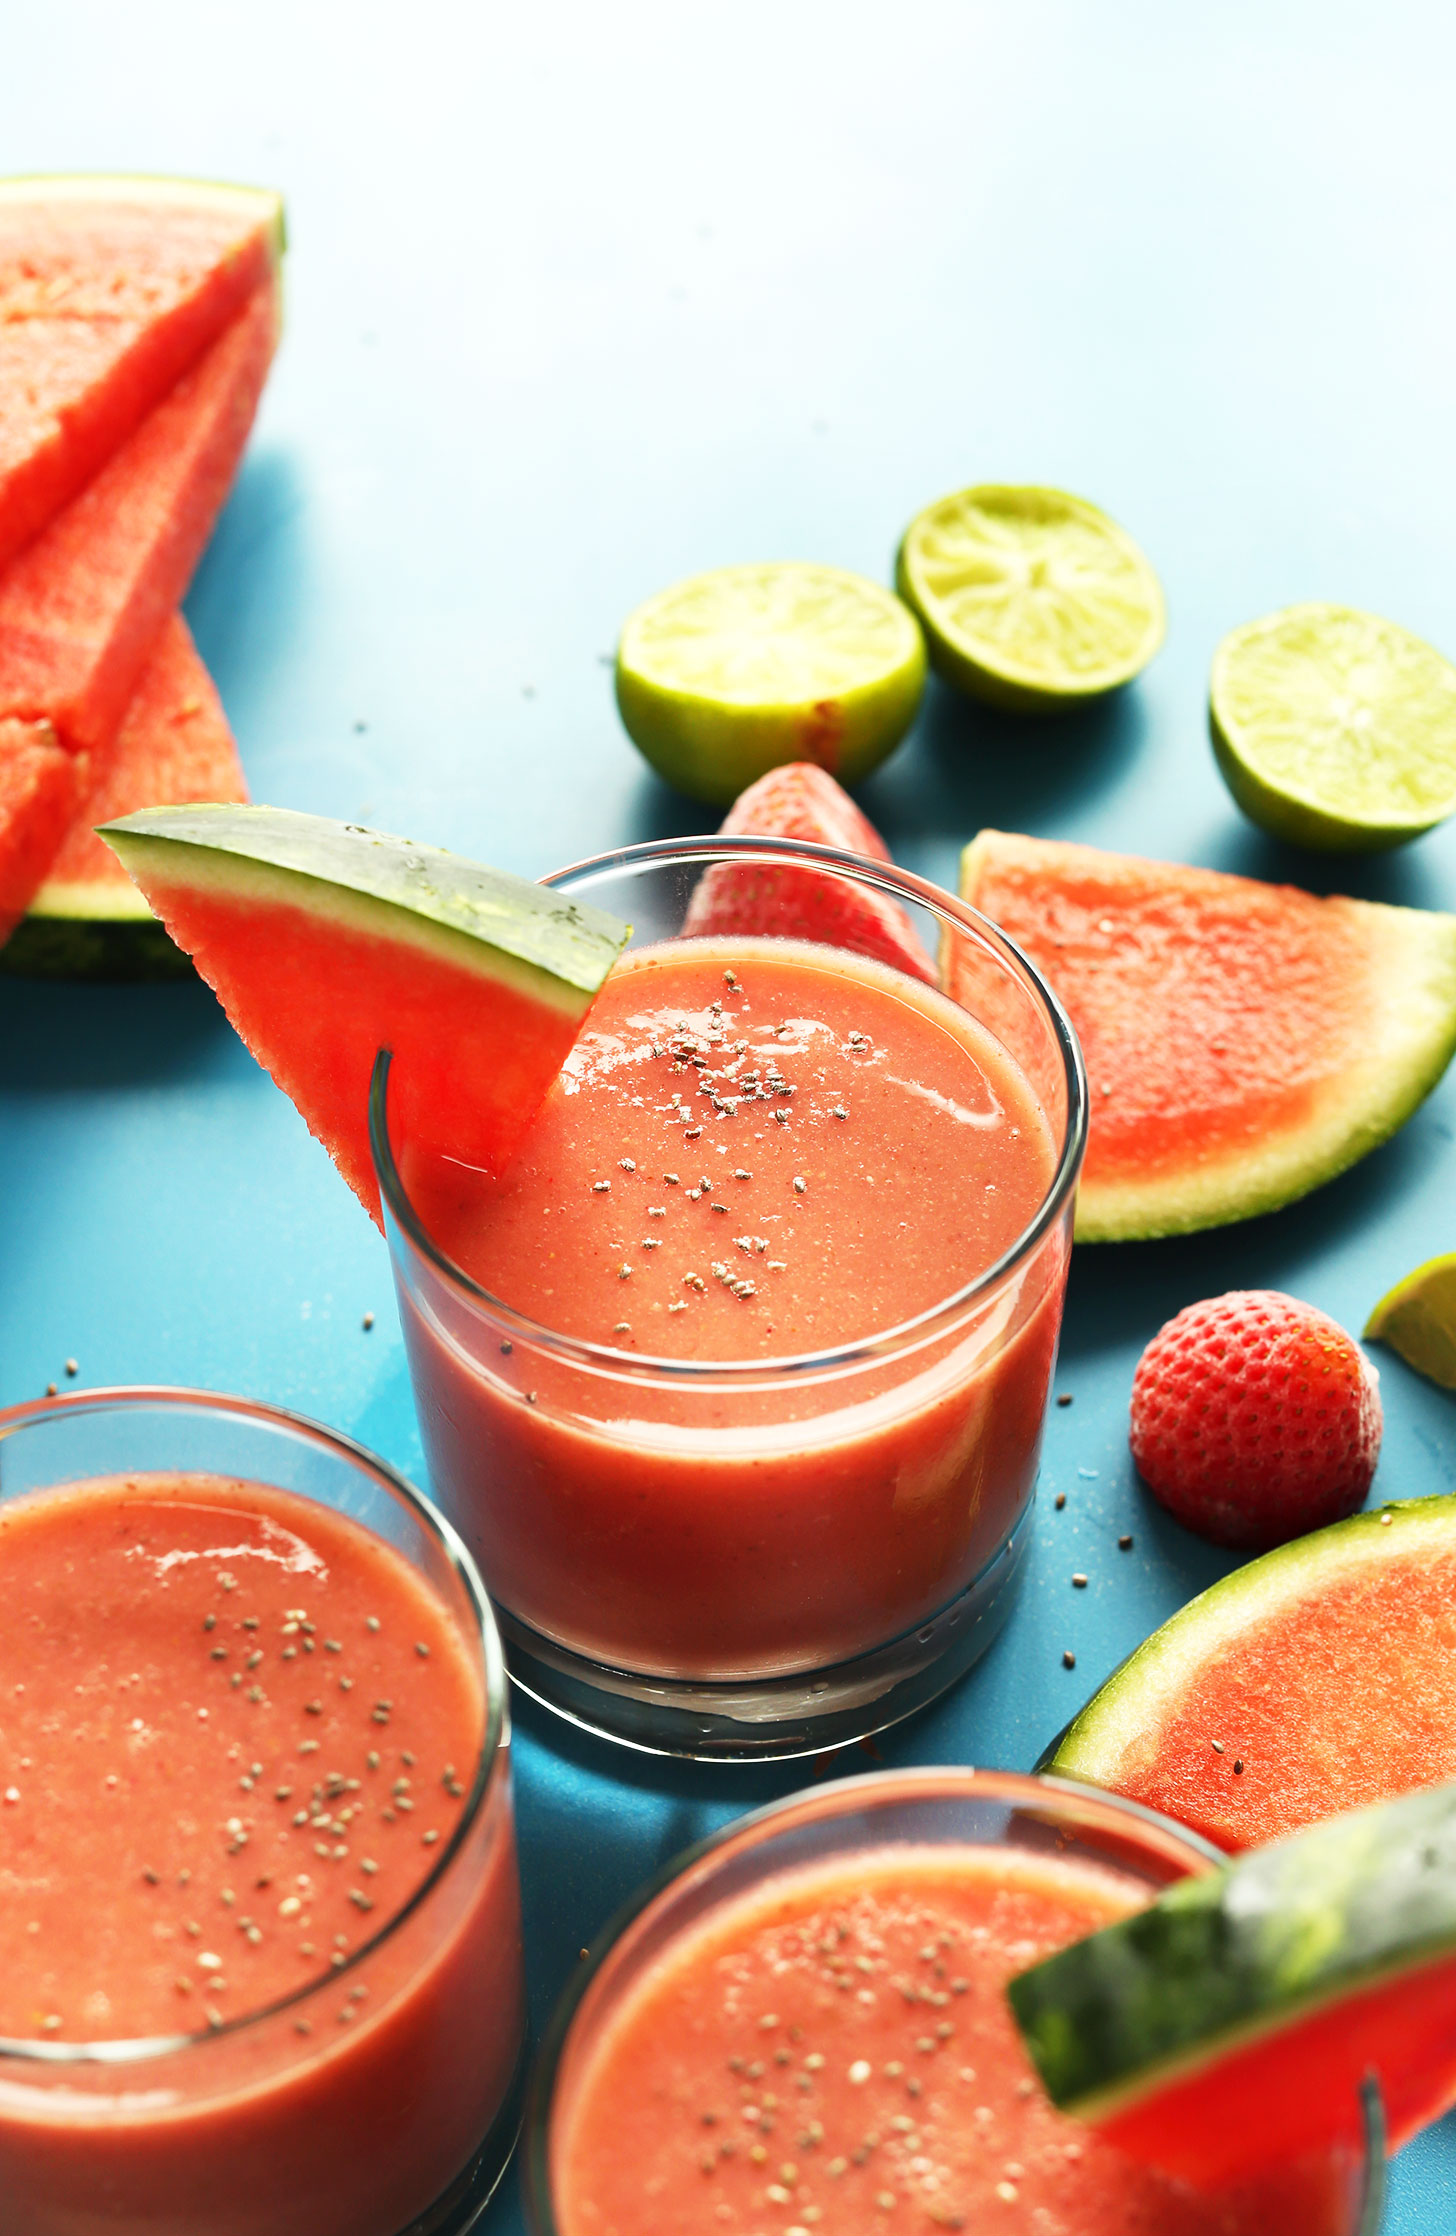 Glasses of our Watermelon Strawberry Smoothie for a hydrating and refreshing summer recipe